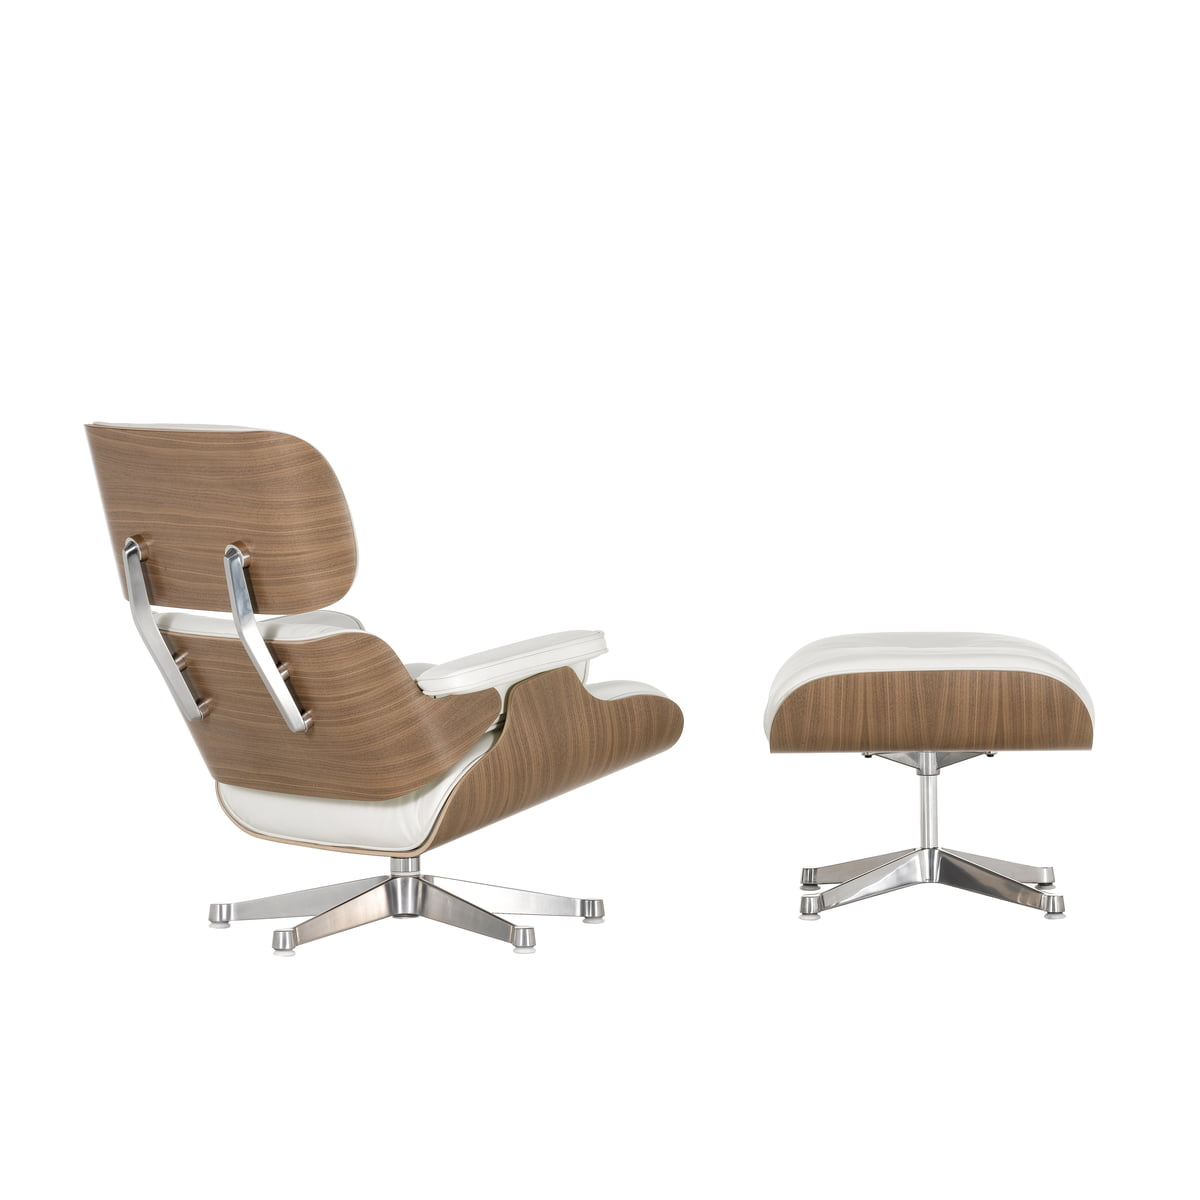 vitra eames lounge chair ottoman walnut white. Black Bedroom Furniture Sets. Home Design Ideas